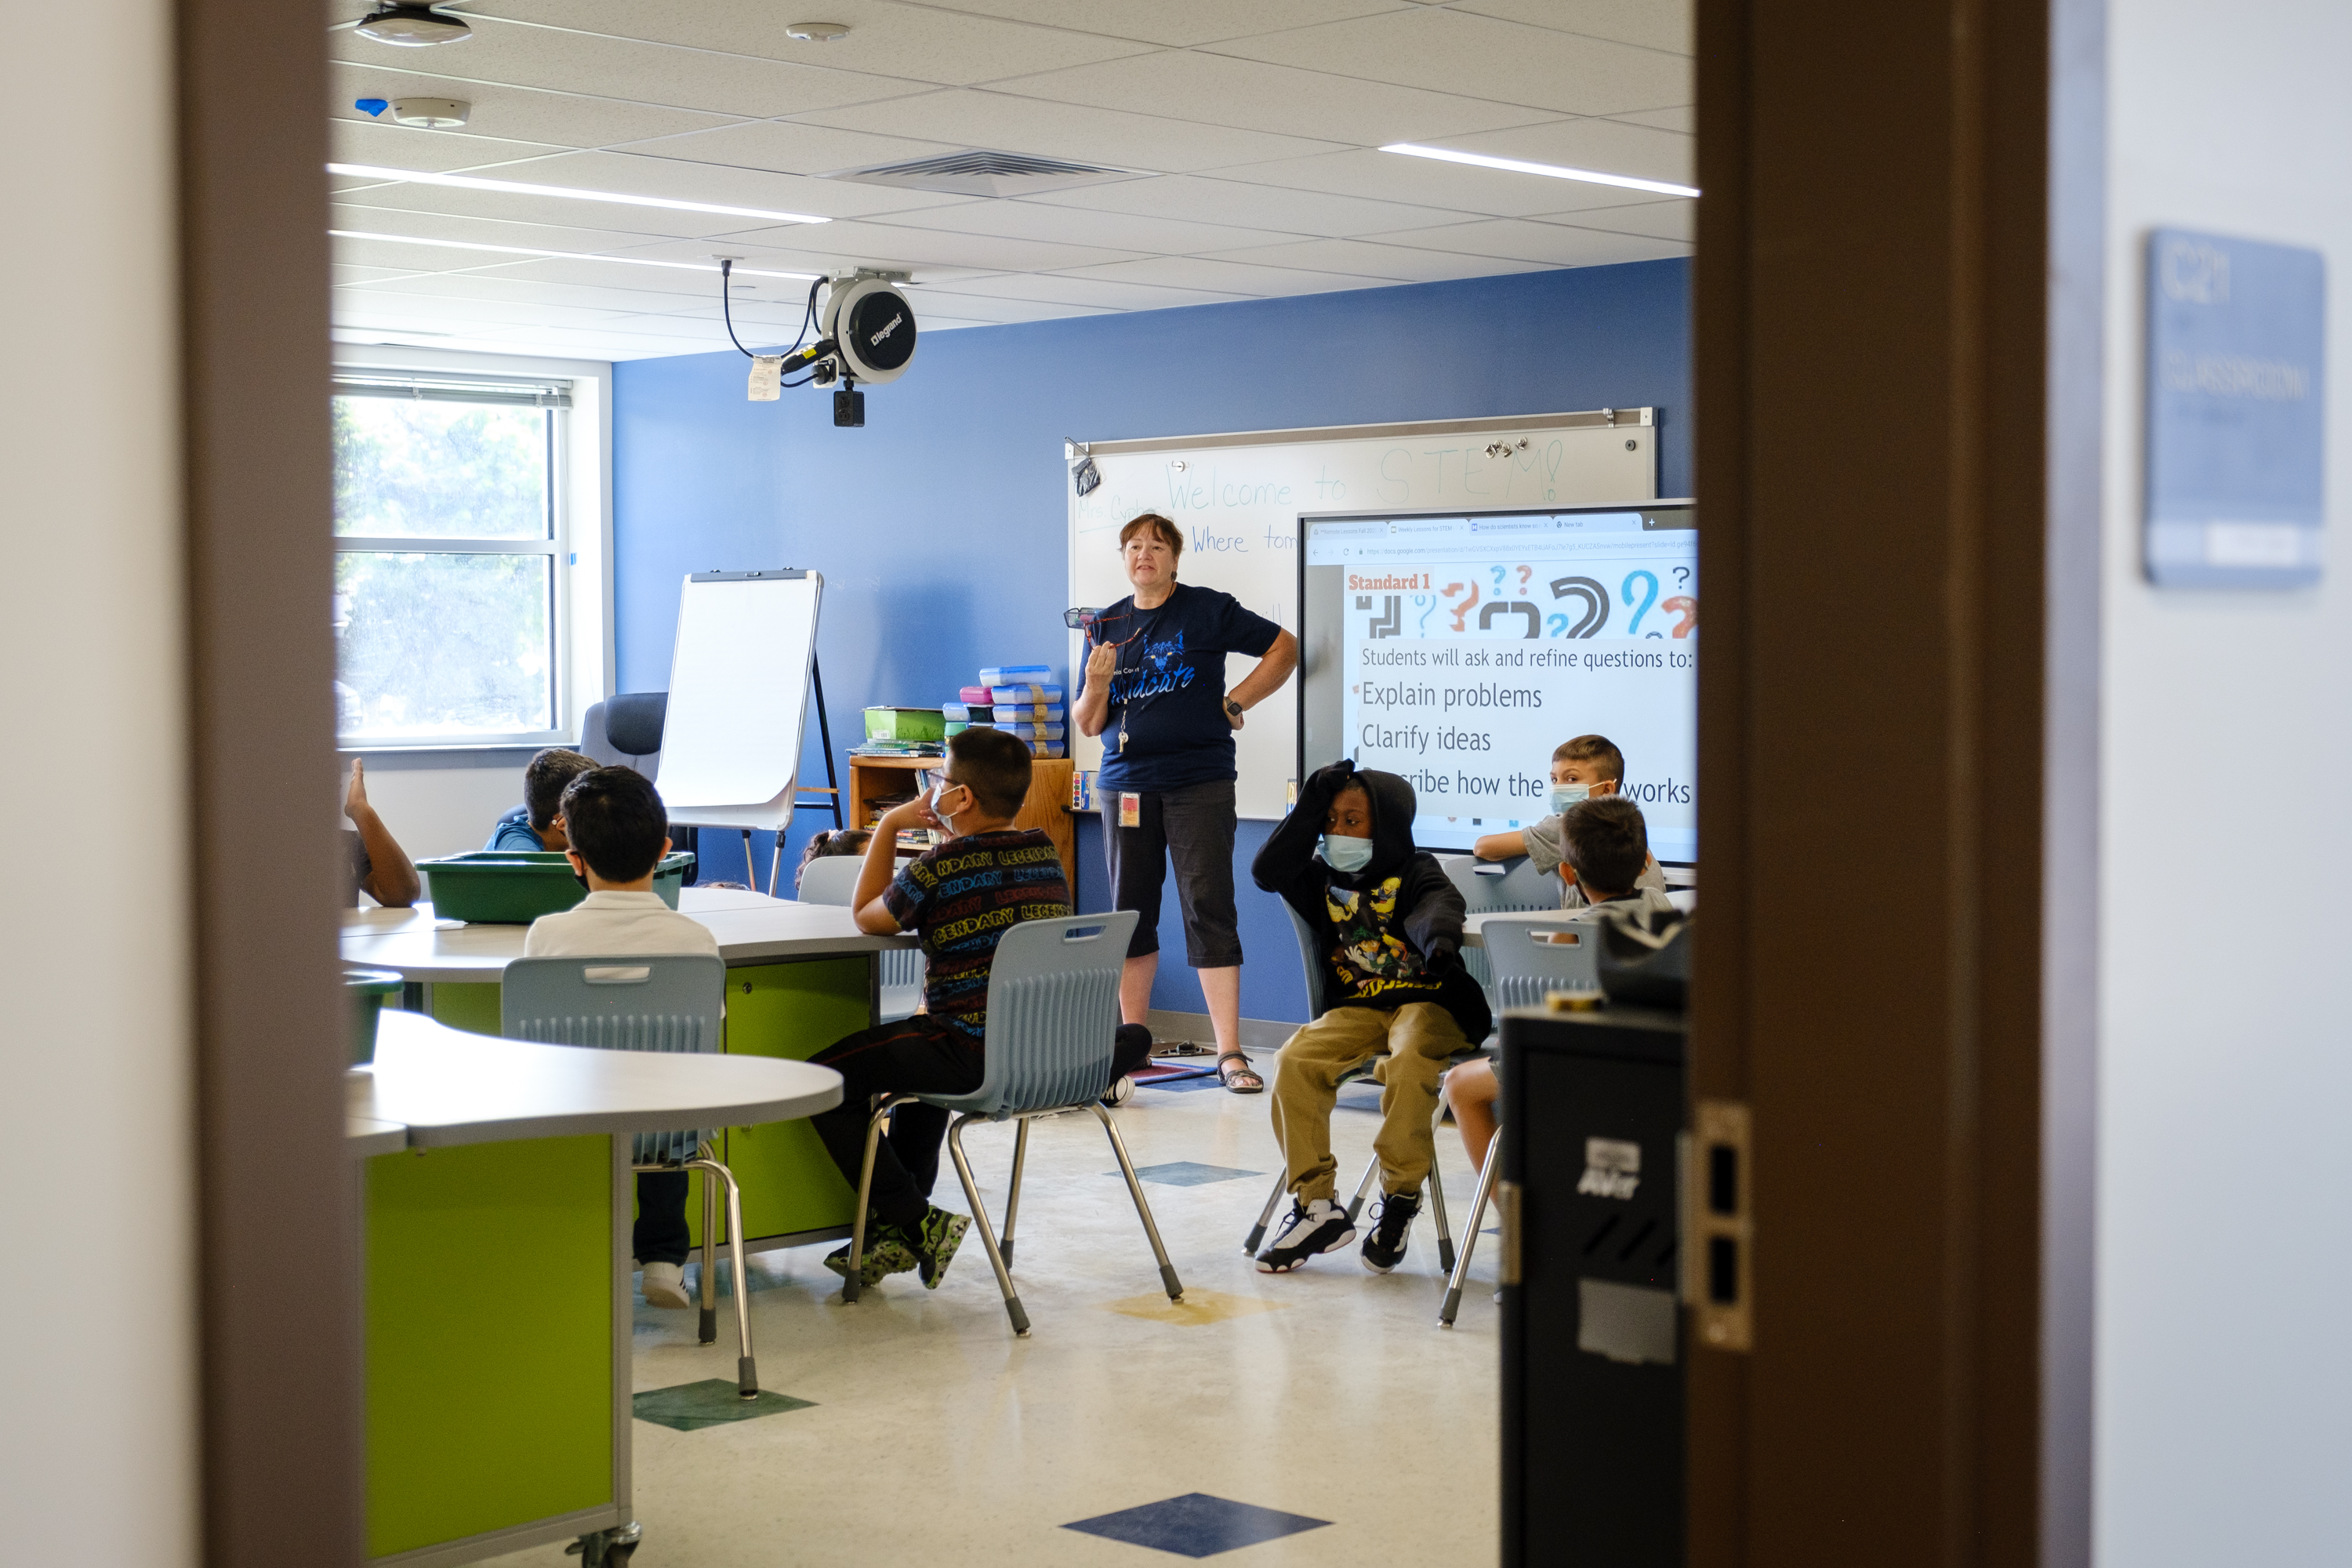 A teacher speaks to her students during a STEM class. The classroom is partially obscured by the doorframe.